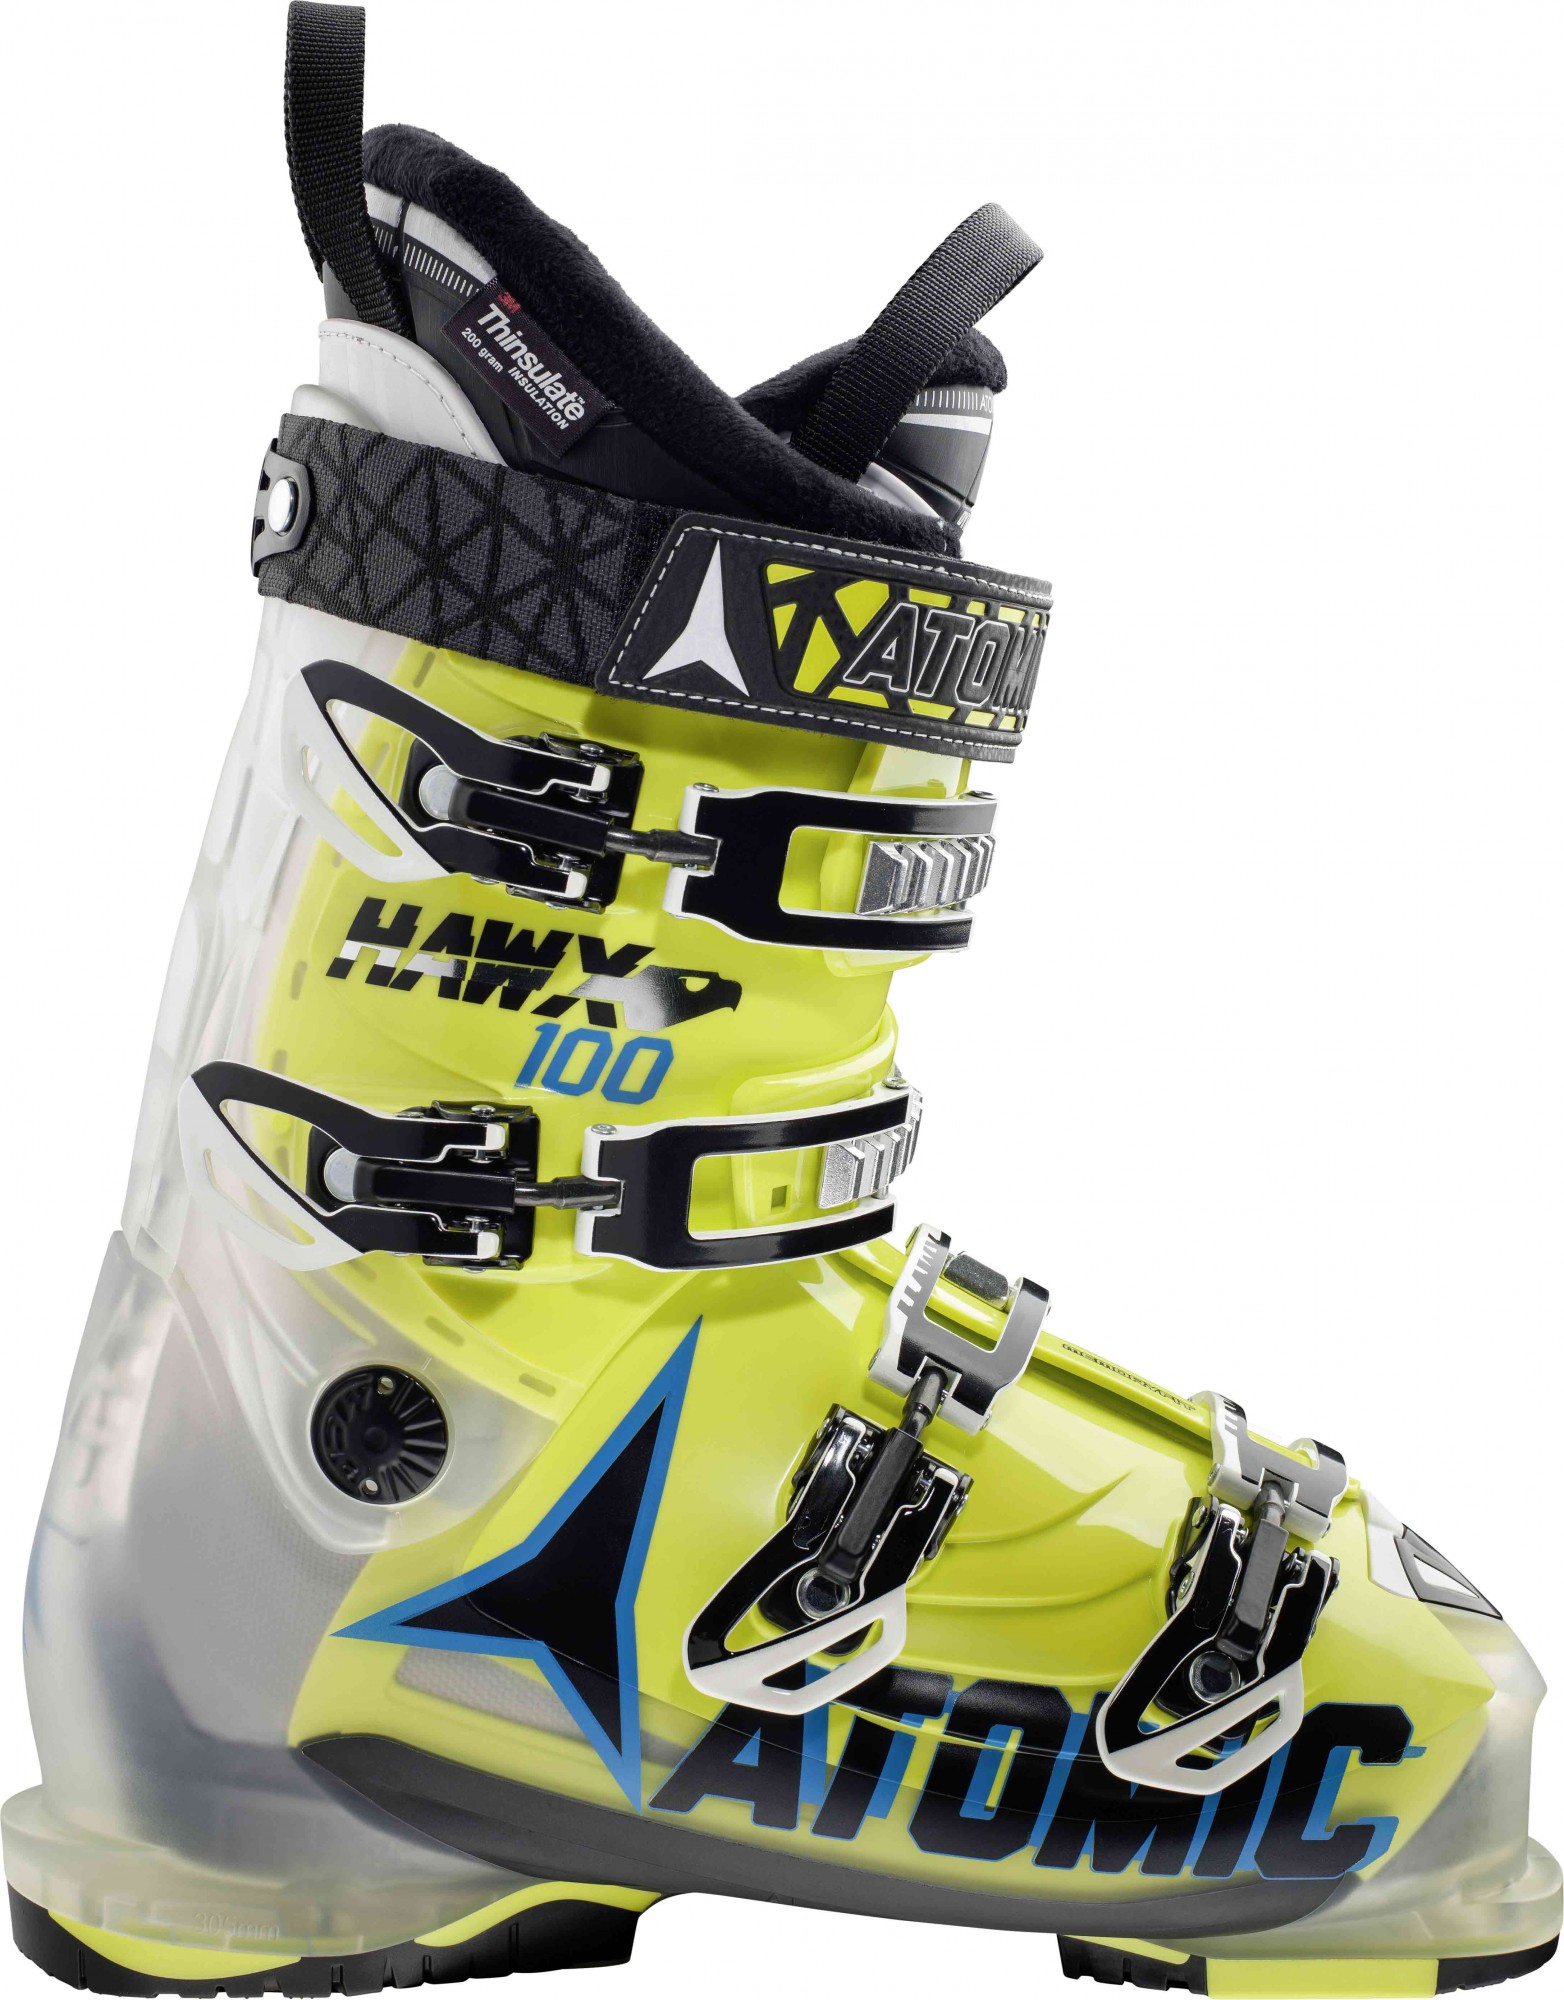 Atomic Hawx 100 - Crystal/Lime - 1 Paar All Mountain Skischuhe - MP 29.0